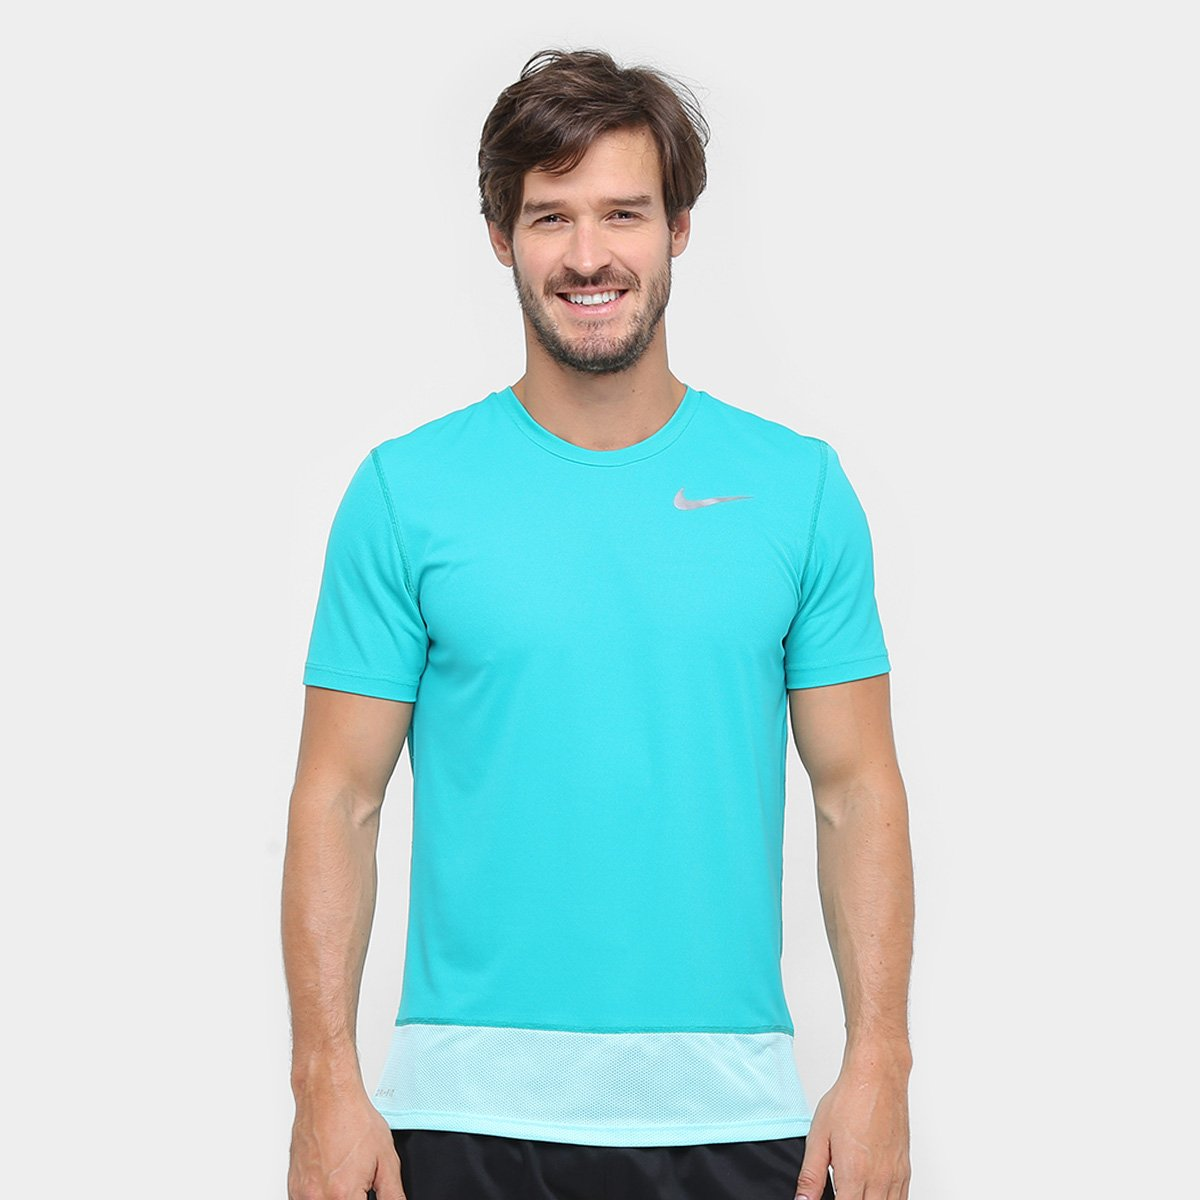 Cerdito doble Sentimiento de culpa  Camiseta Nike DRI-FIT Breathe Rapid Masculina | Shop Timão